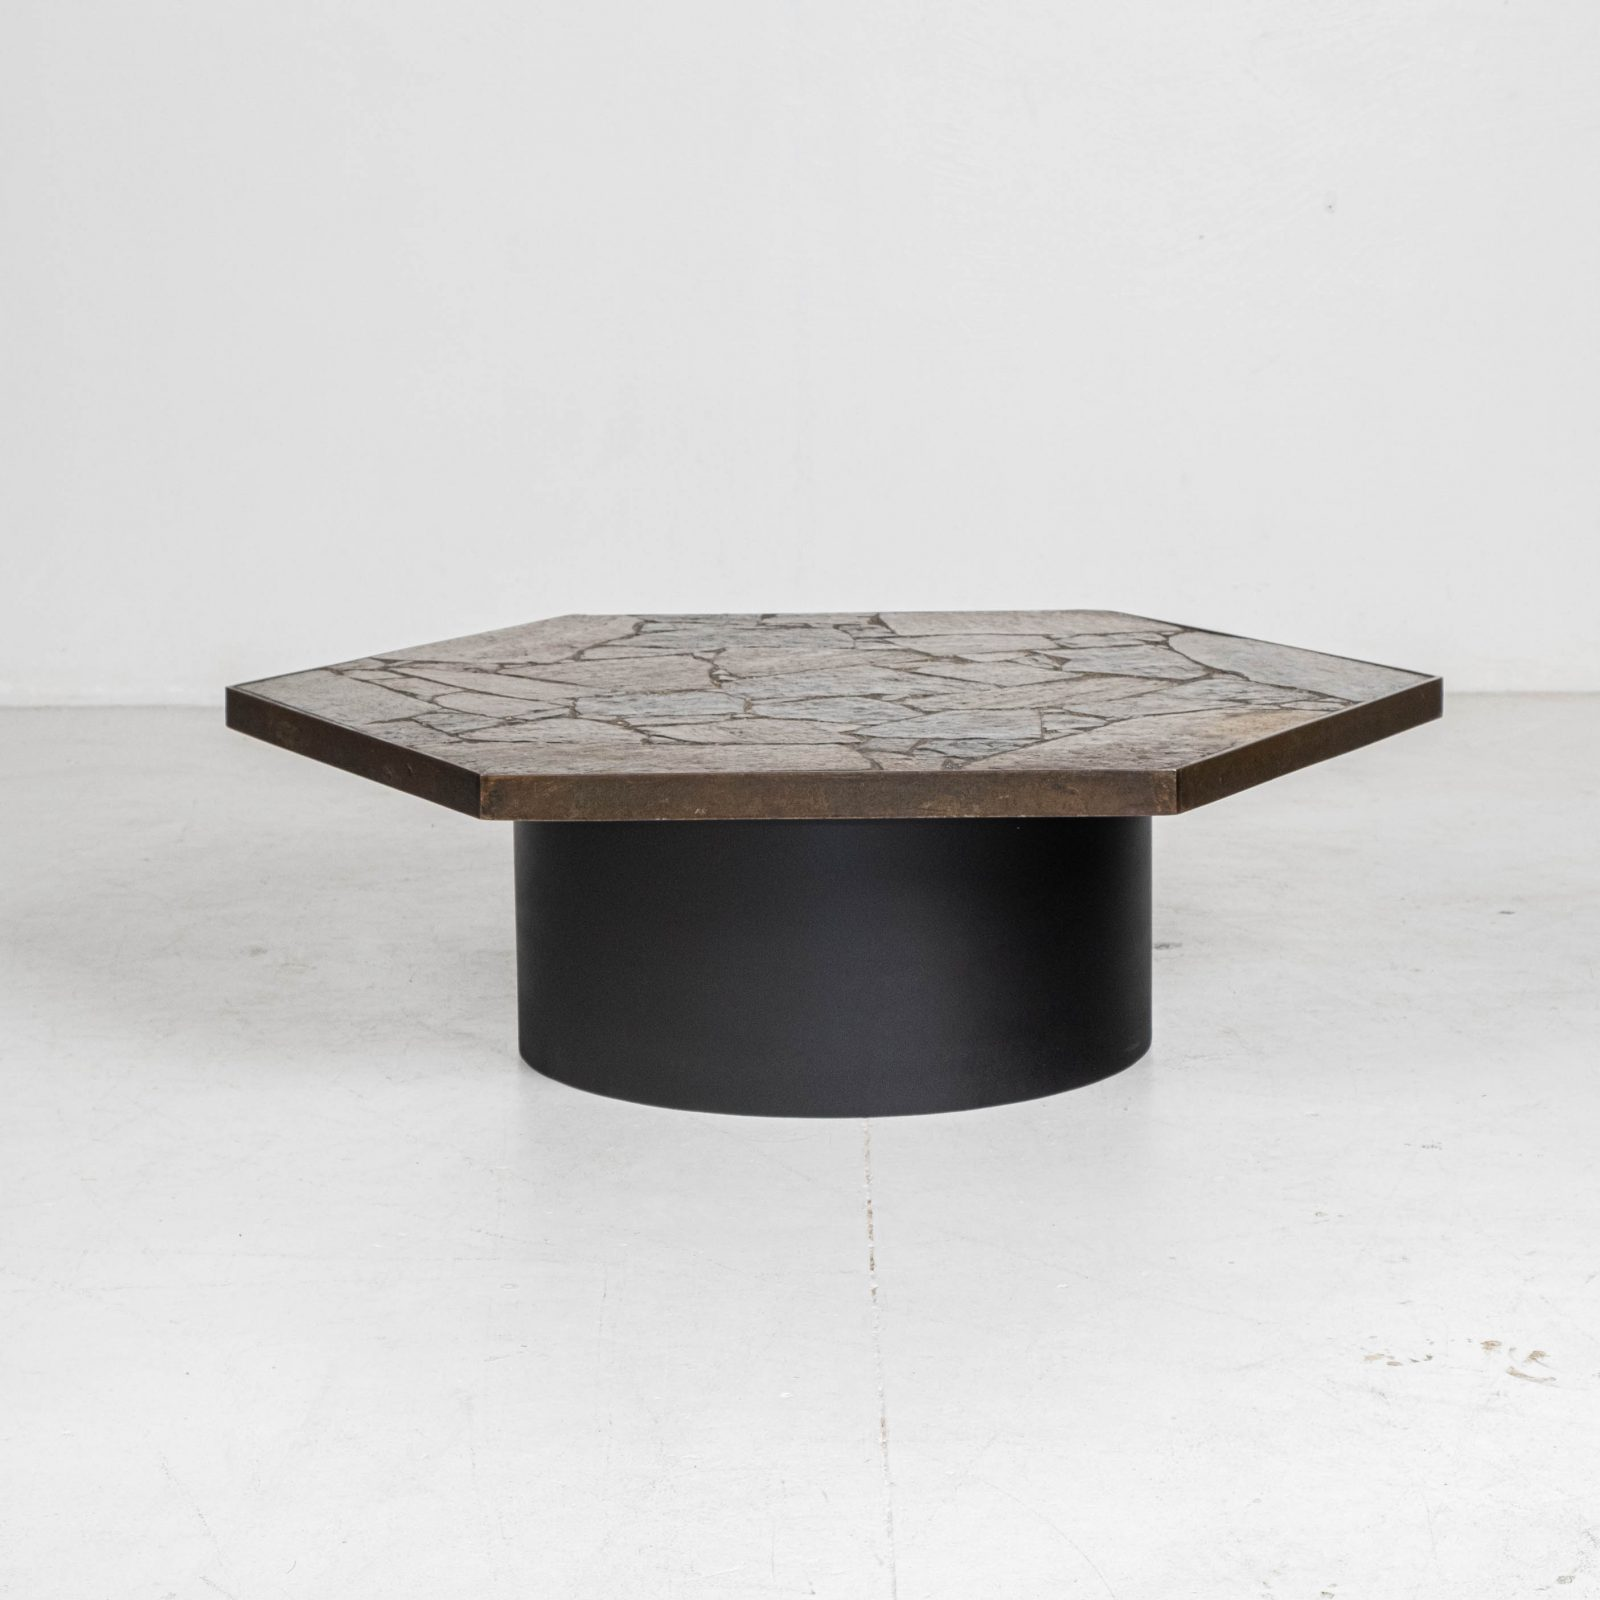 Hexagonal Coffee Table In The Style Of Paul Kingma With Stone Top And Metal Edge, 1970s, The Netherlands Hero 00001